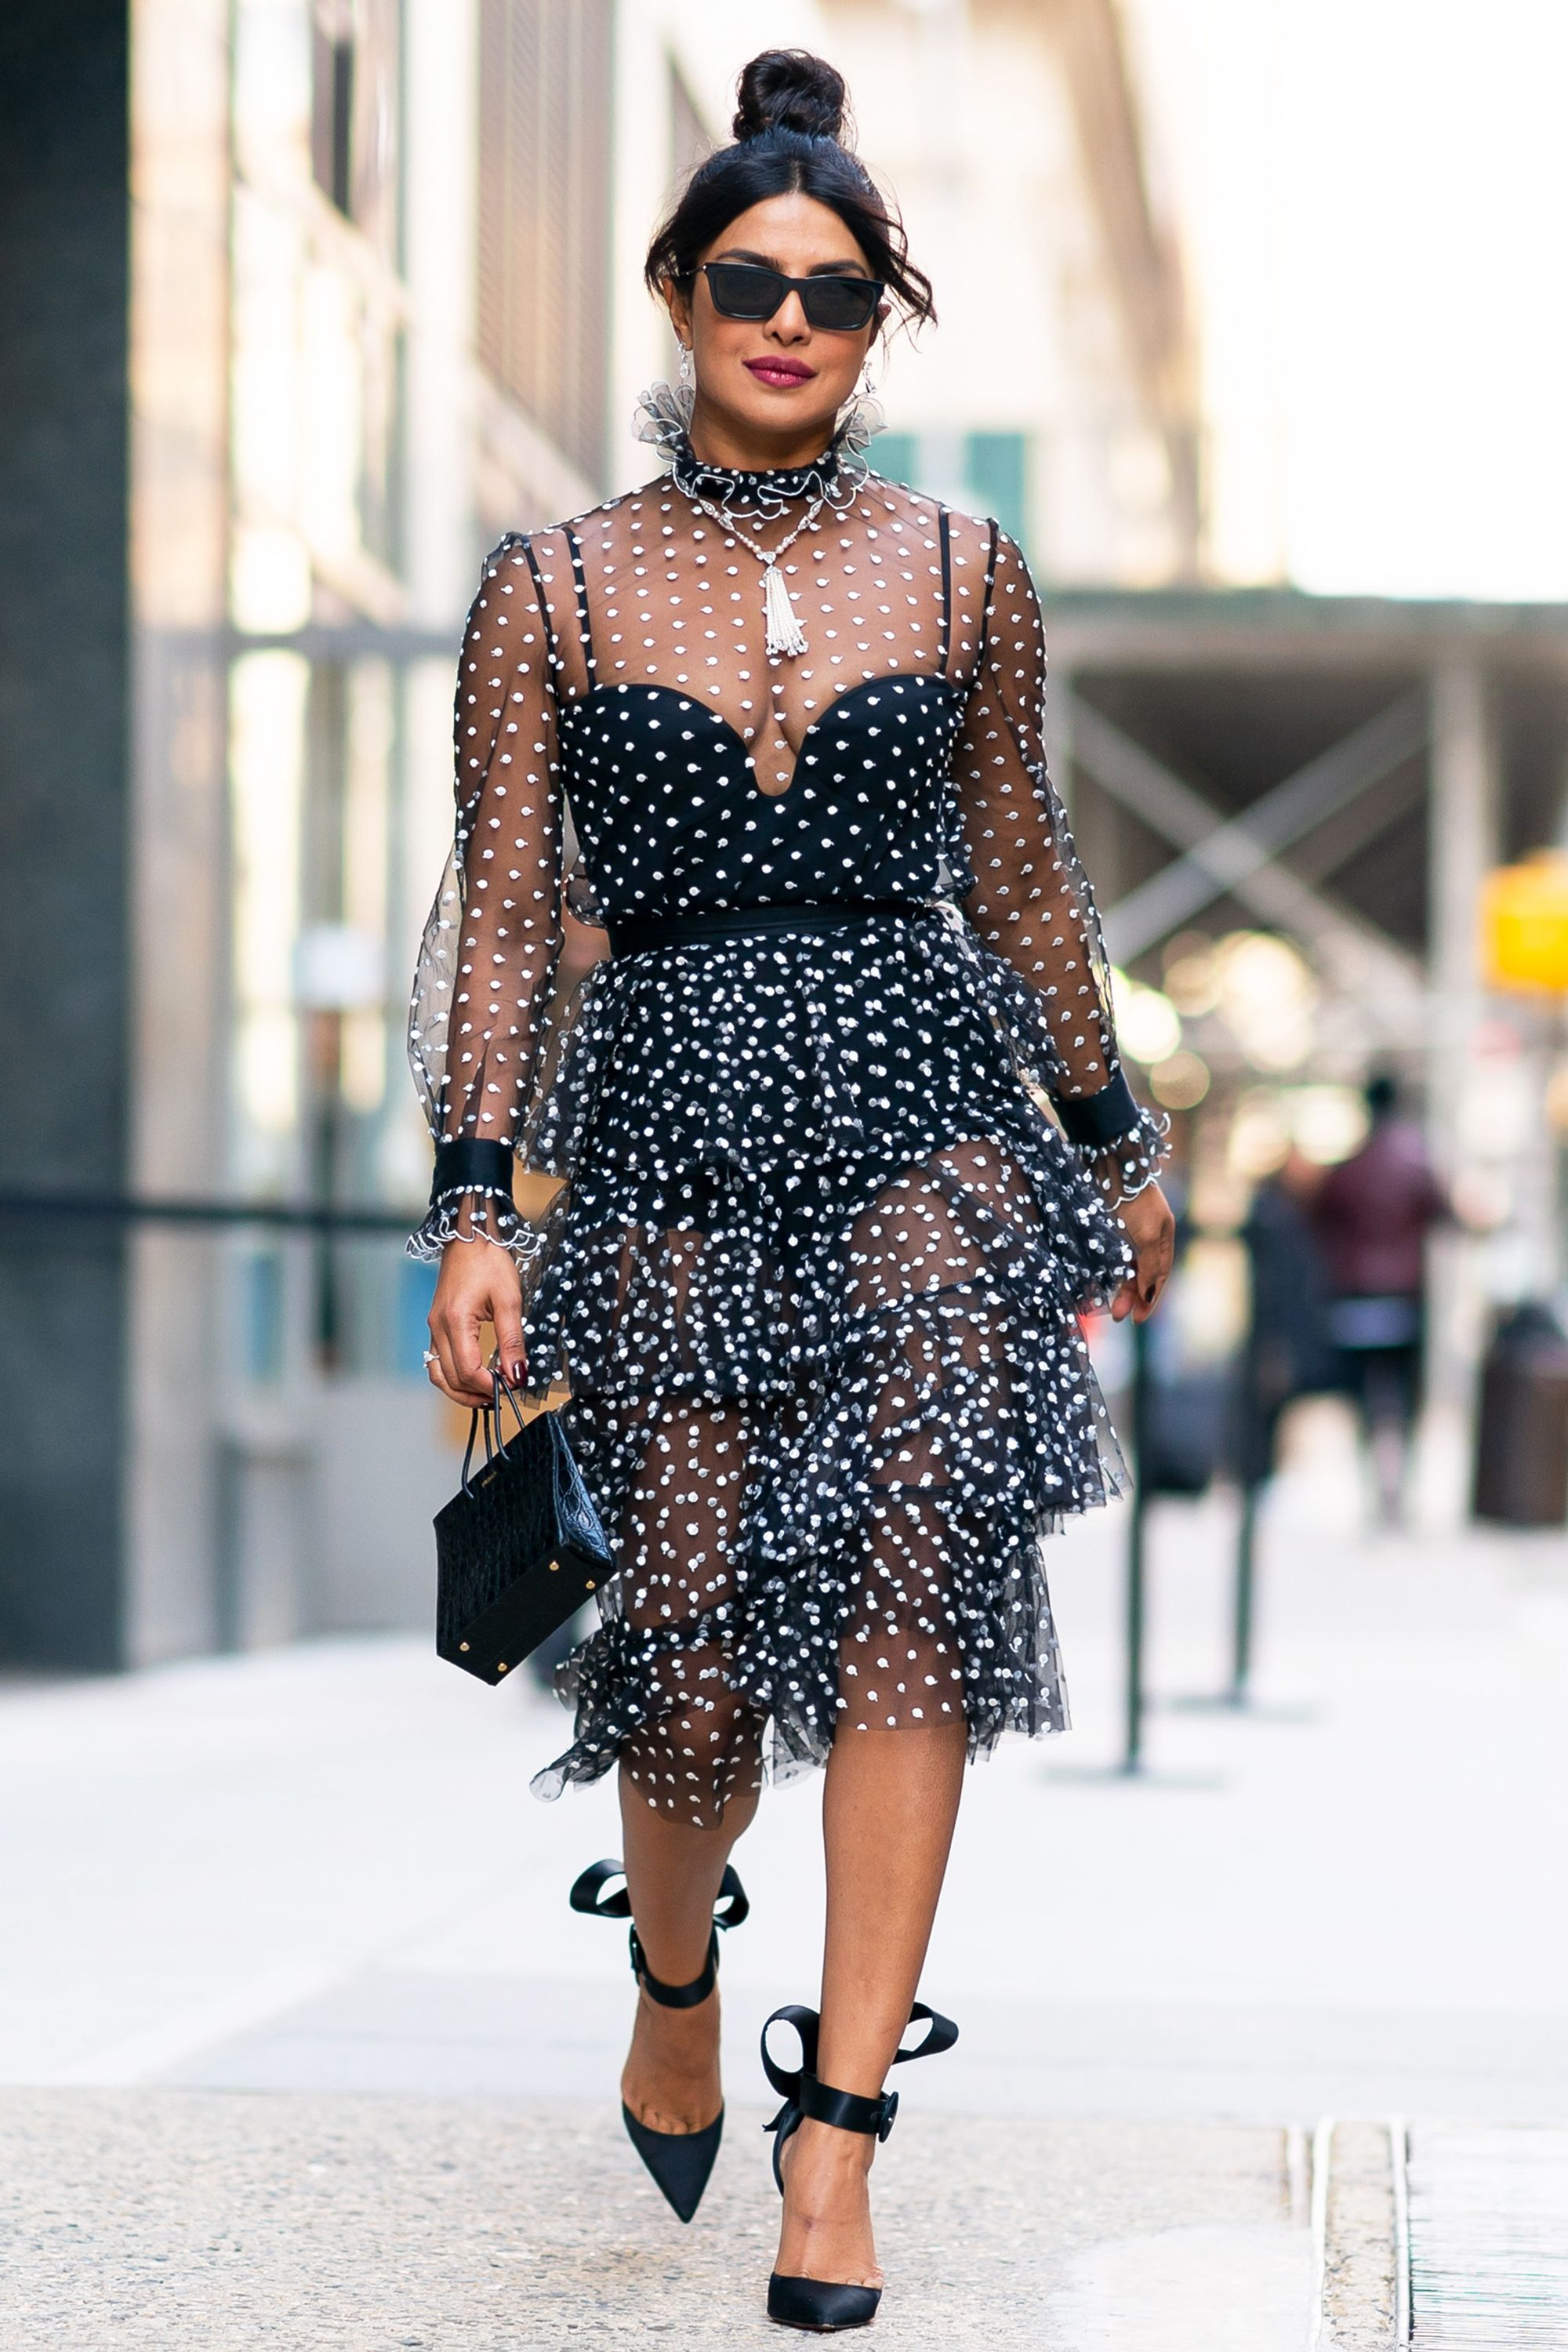 Who: Priyanka Chopra When: March 19, 2019 Wearing: Philosophy di Lorenzo Serafini dress, Christian Louboutin shoes, Medea bag Why: It's officially spring, and nothing makes us more excited than seeing Priyank Chopra in a flirty dress. Spotted in NYC, she wore ruffles, polka dots, and easy black accessories.